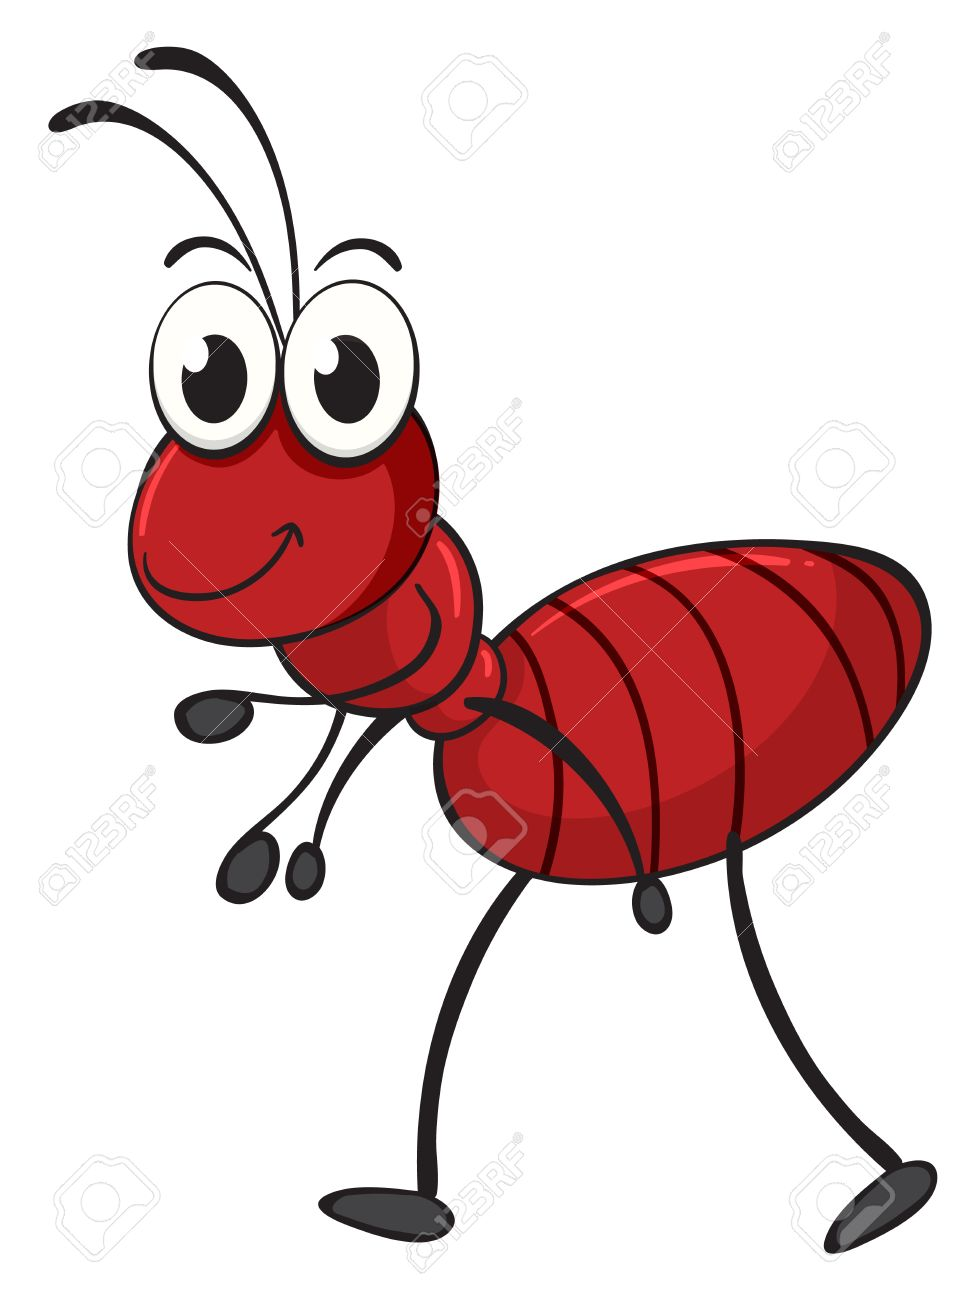 ant clipart, cartoon ants clipart download best cartoon ants #31557